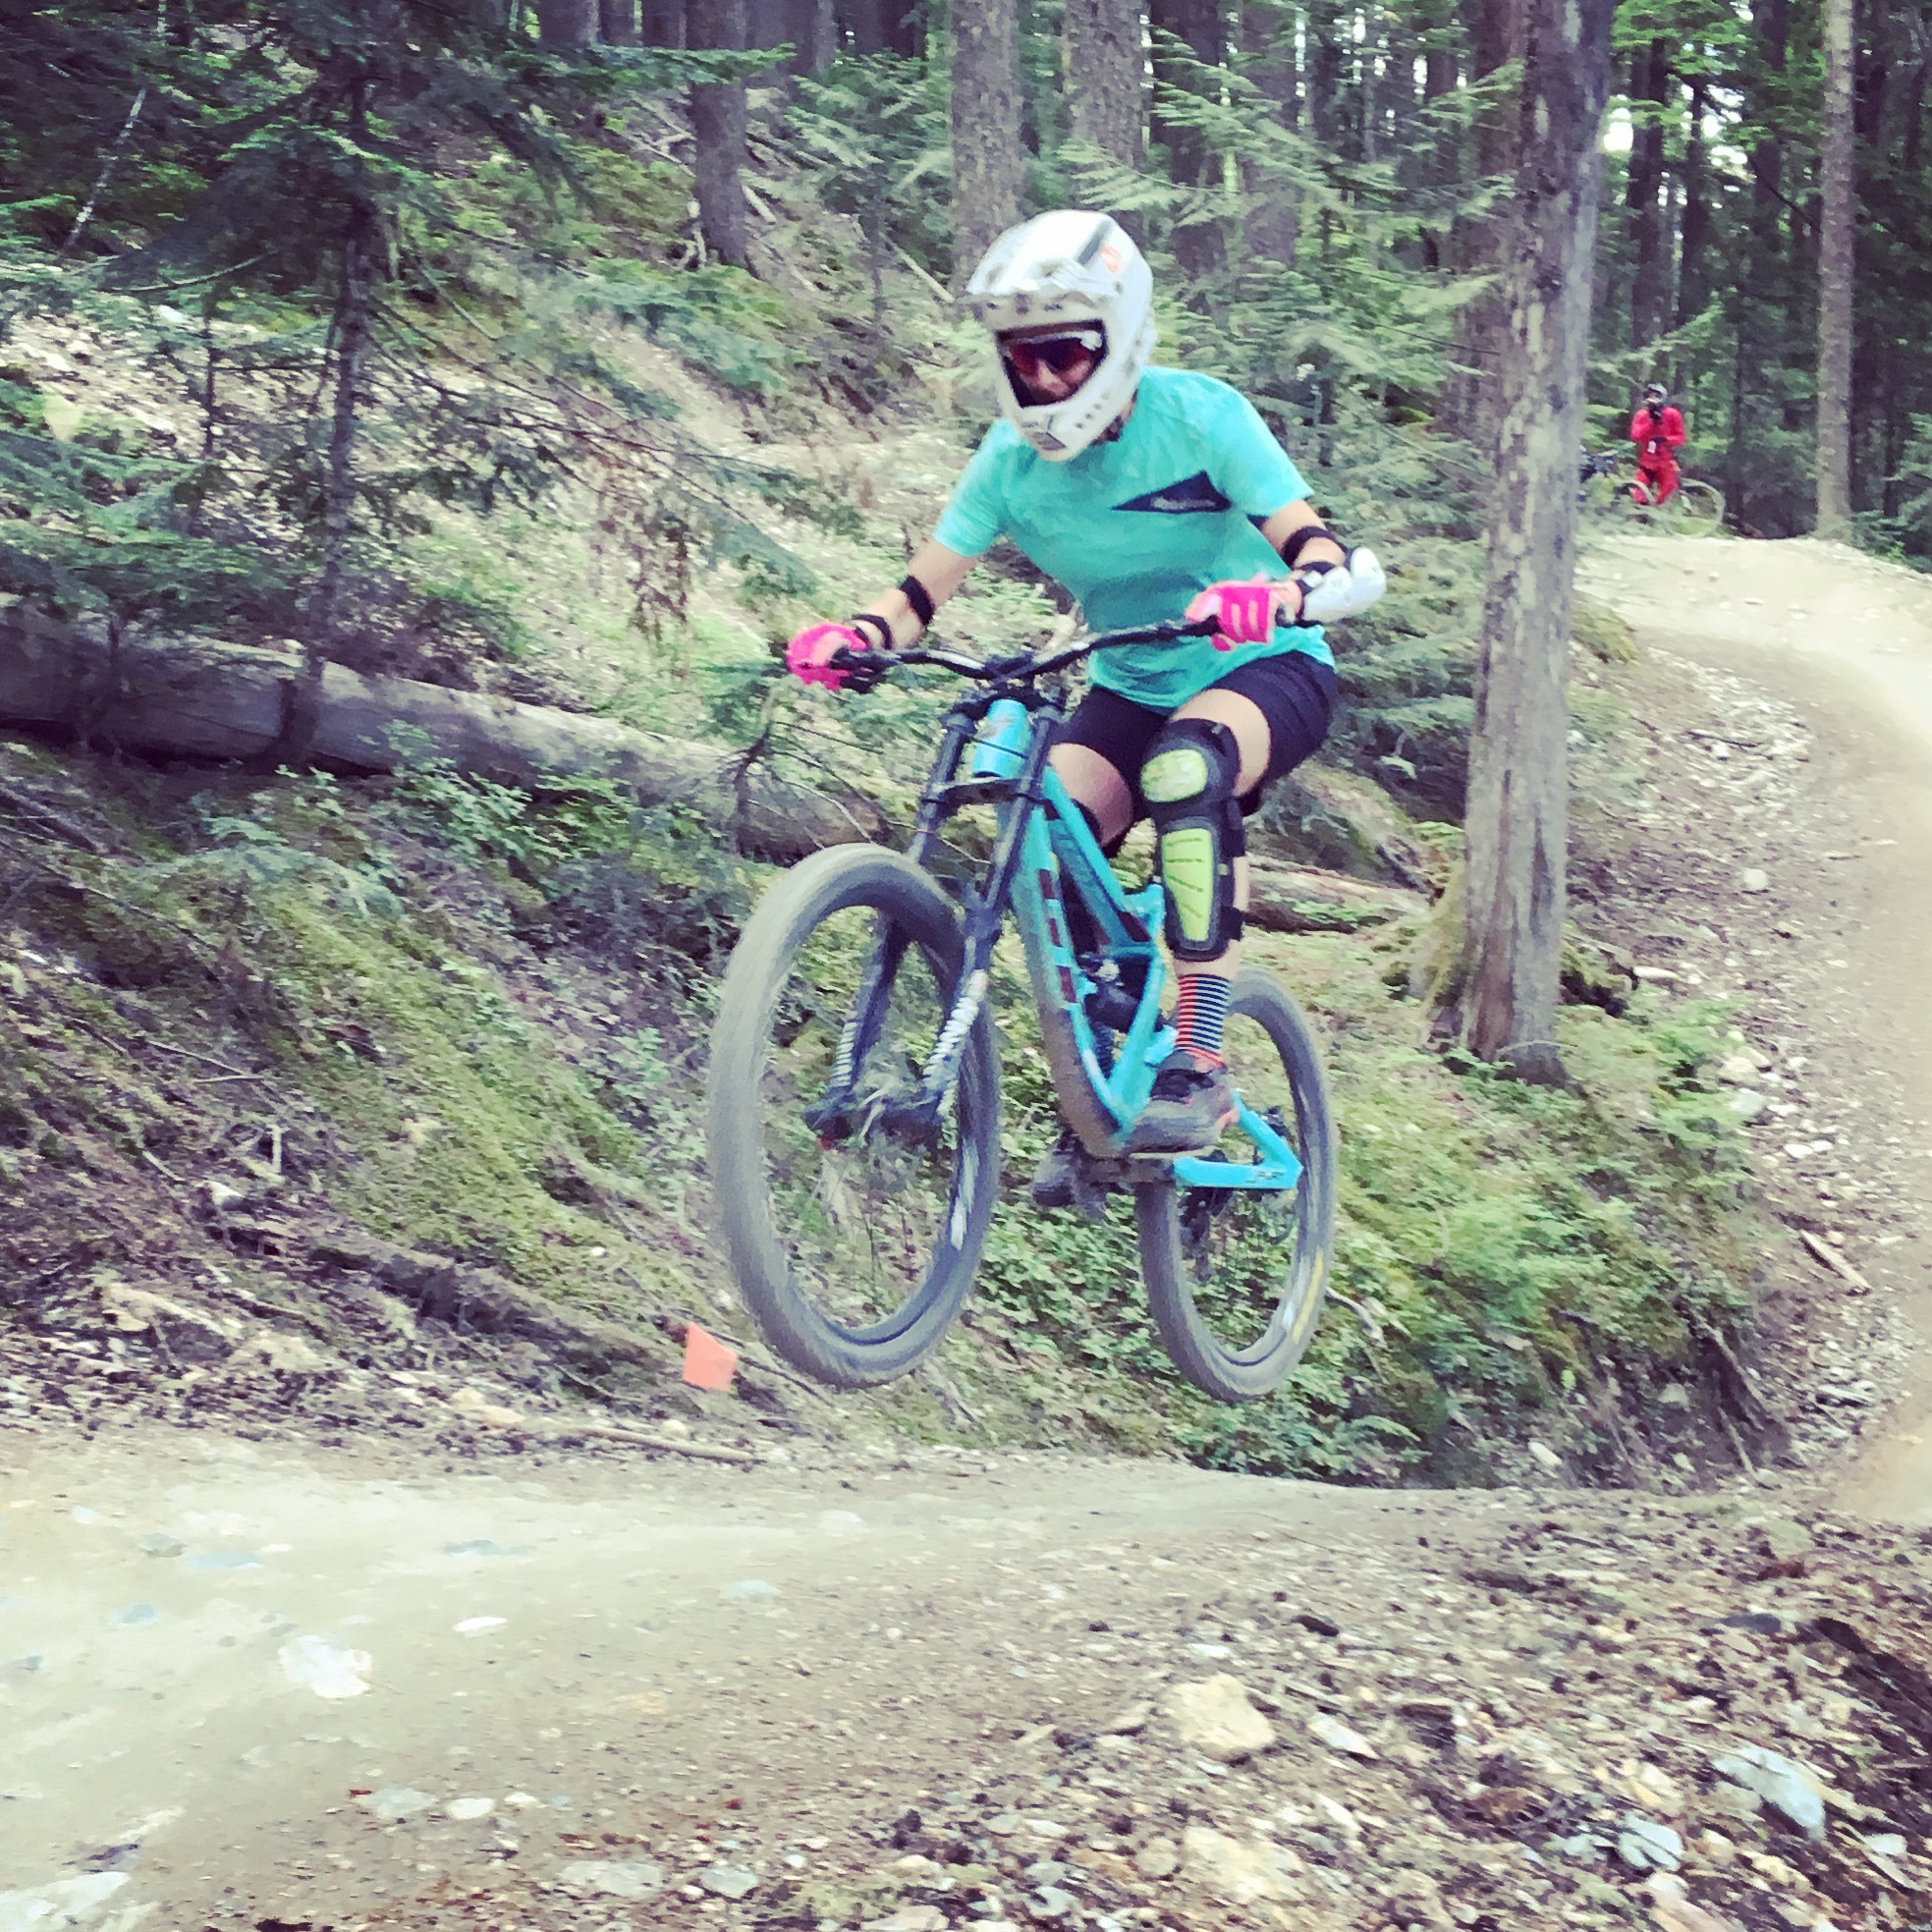 Didn't get a pic of any jumps on the first day, so I made Desi take one for proof on our second ride day. Crank it Up.